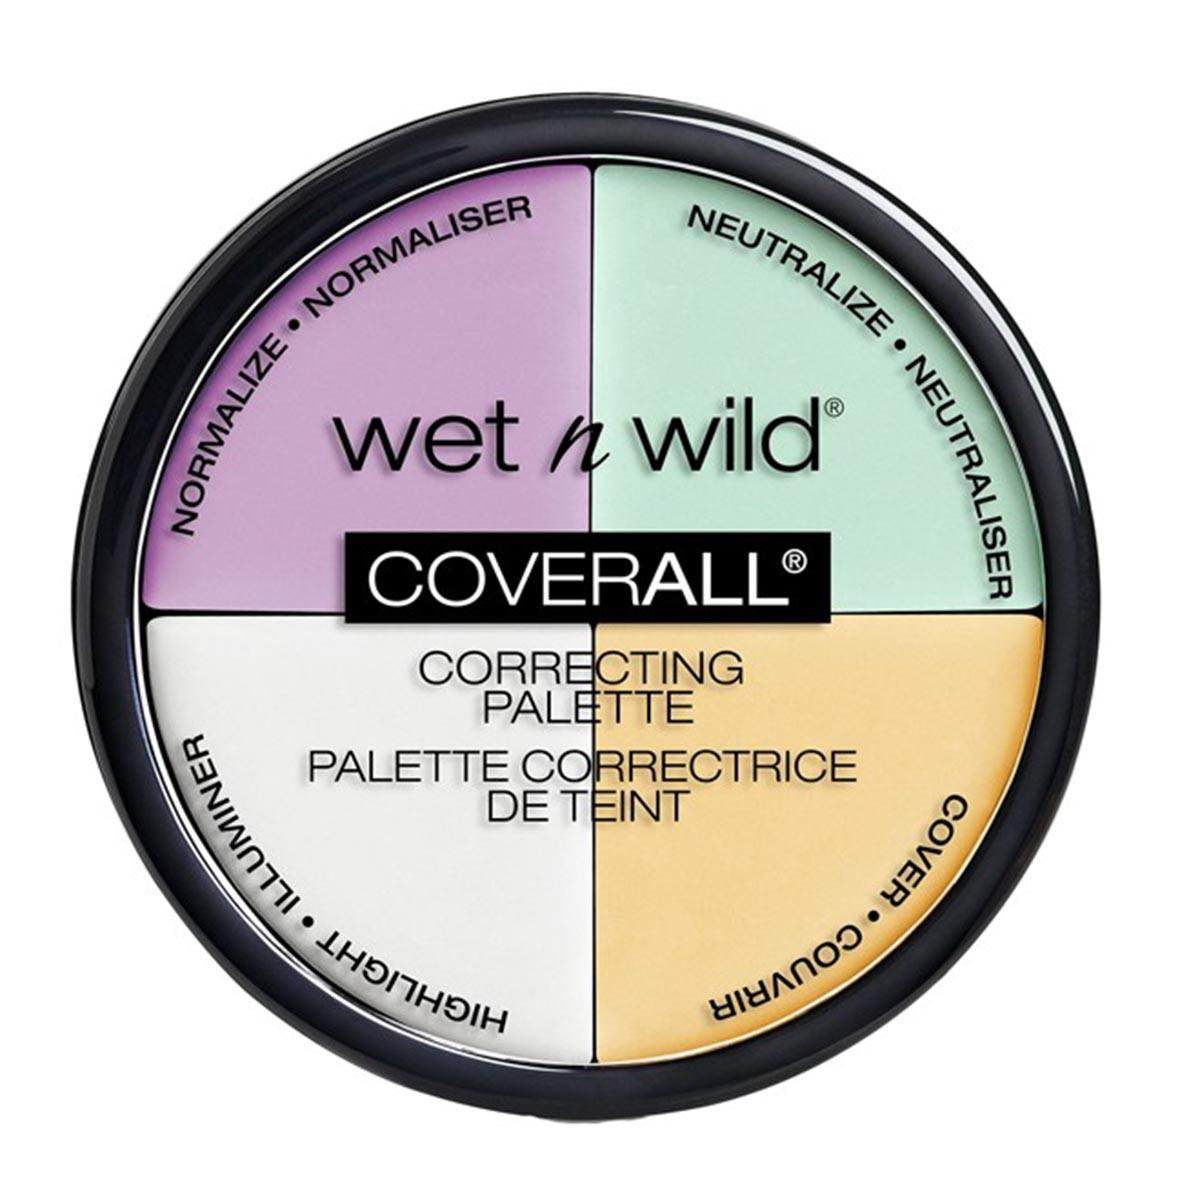 Wet n wild fragrances Coverall Correcting Palette Color Commentary